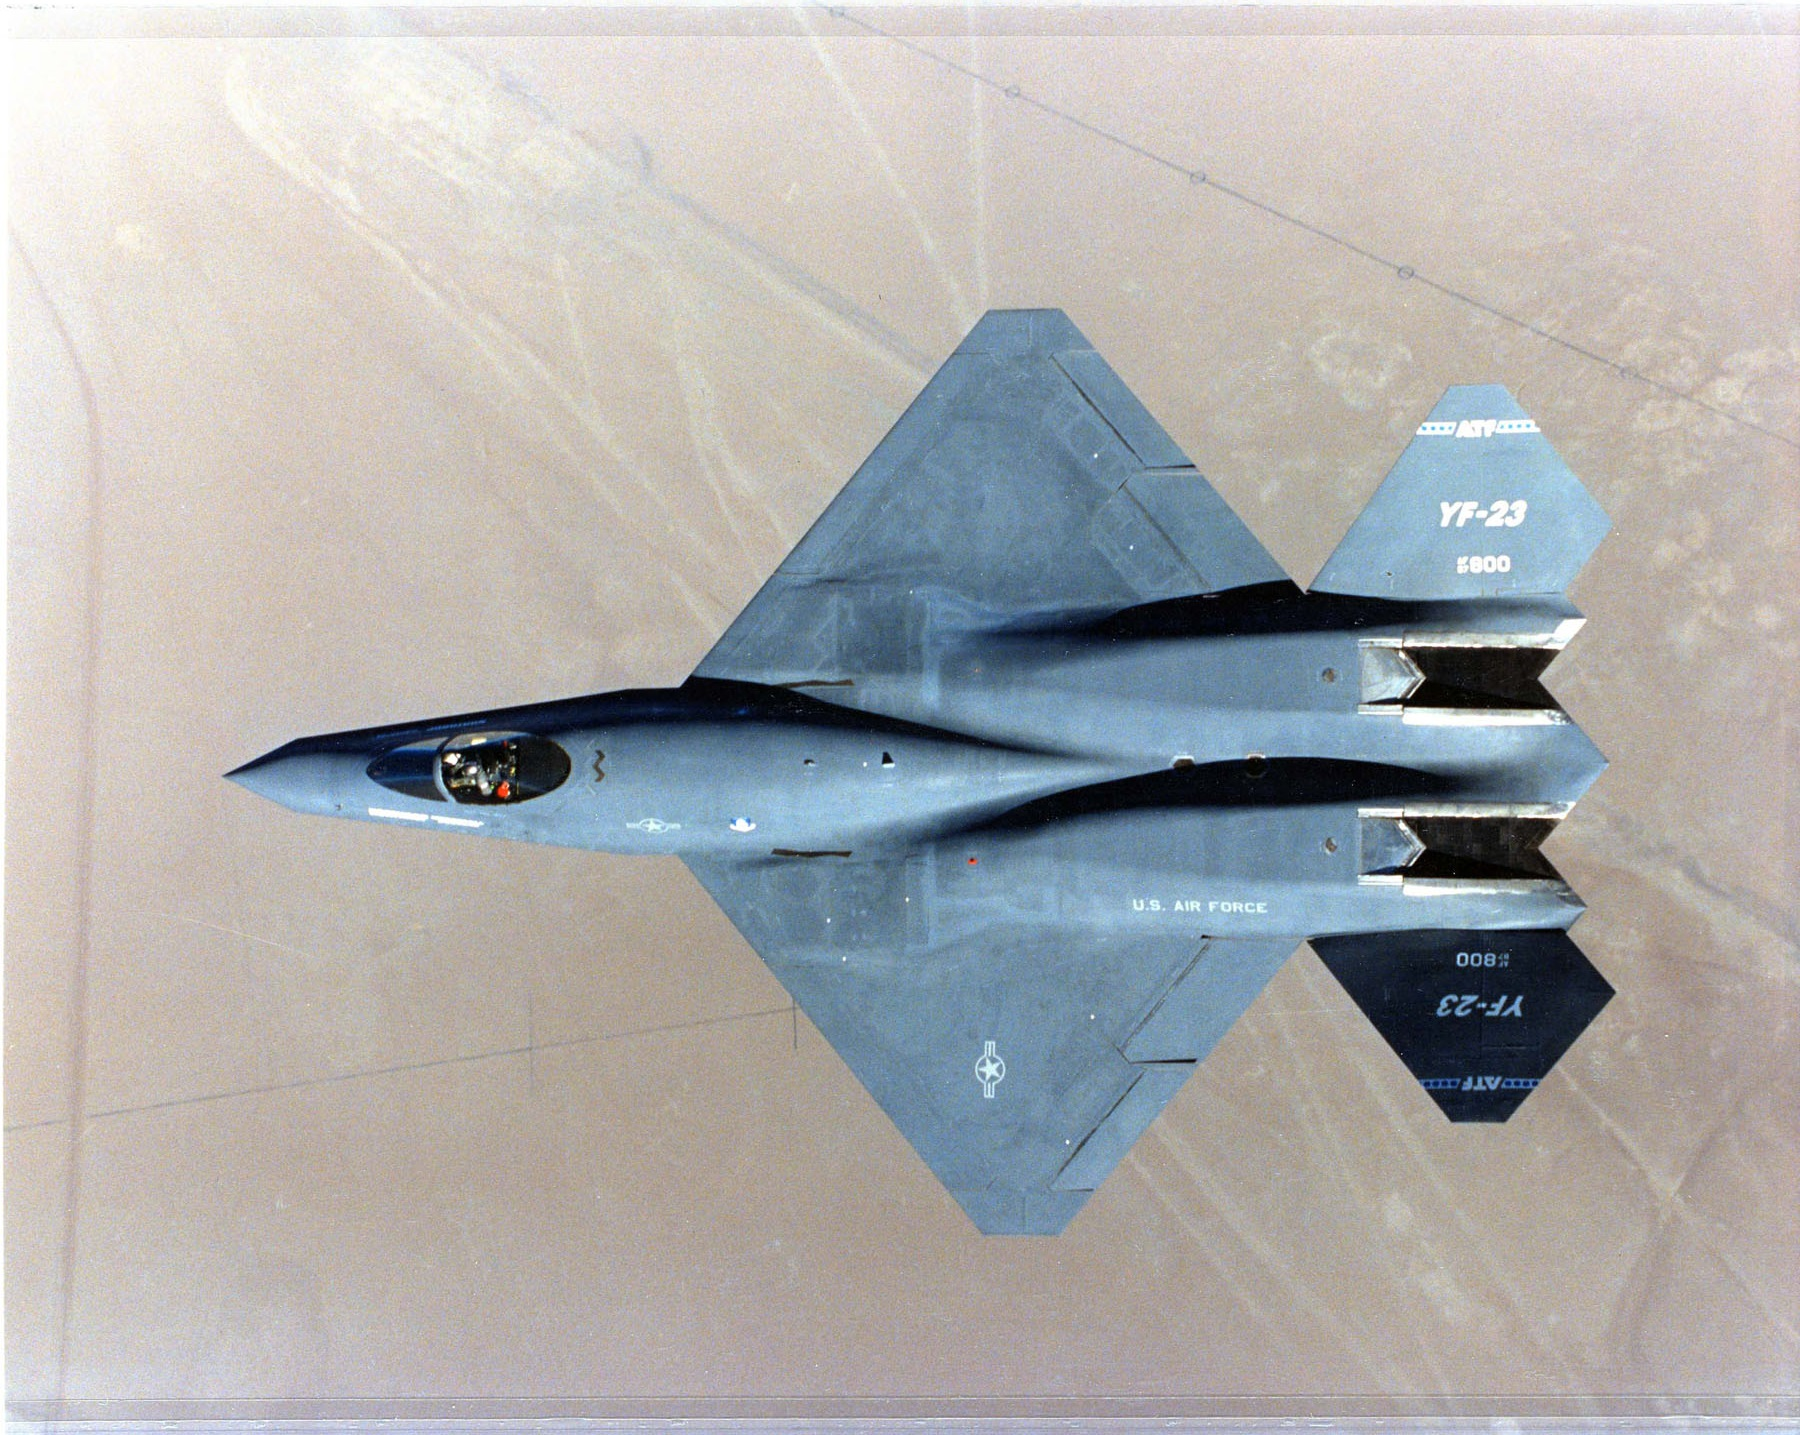 Stealth War: F-23 Stealth Fighter vs. the F-22 Raptor (Who Wins?)